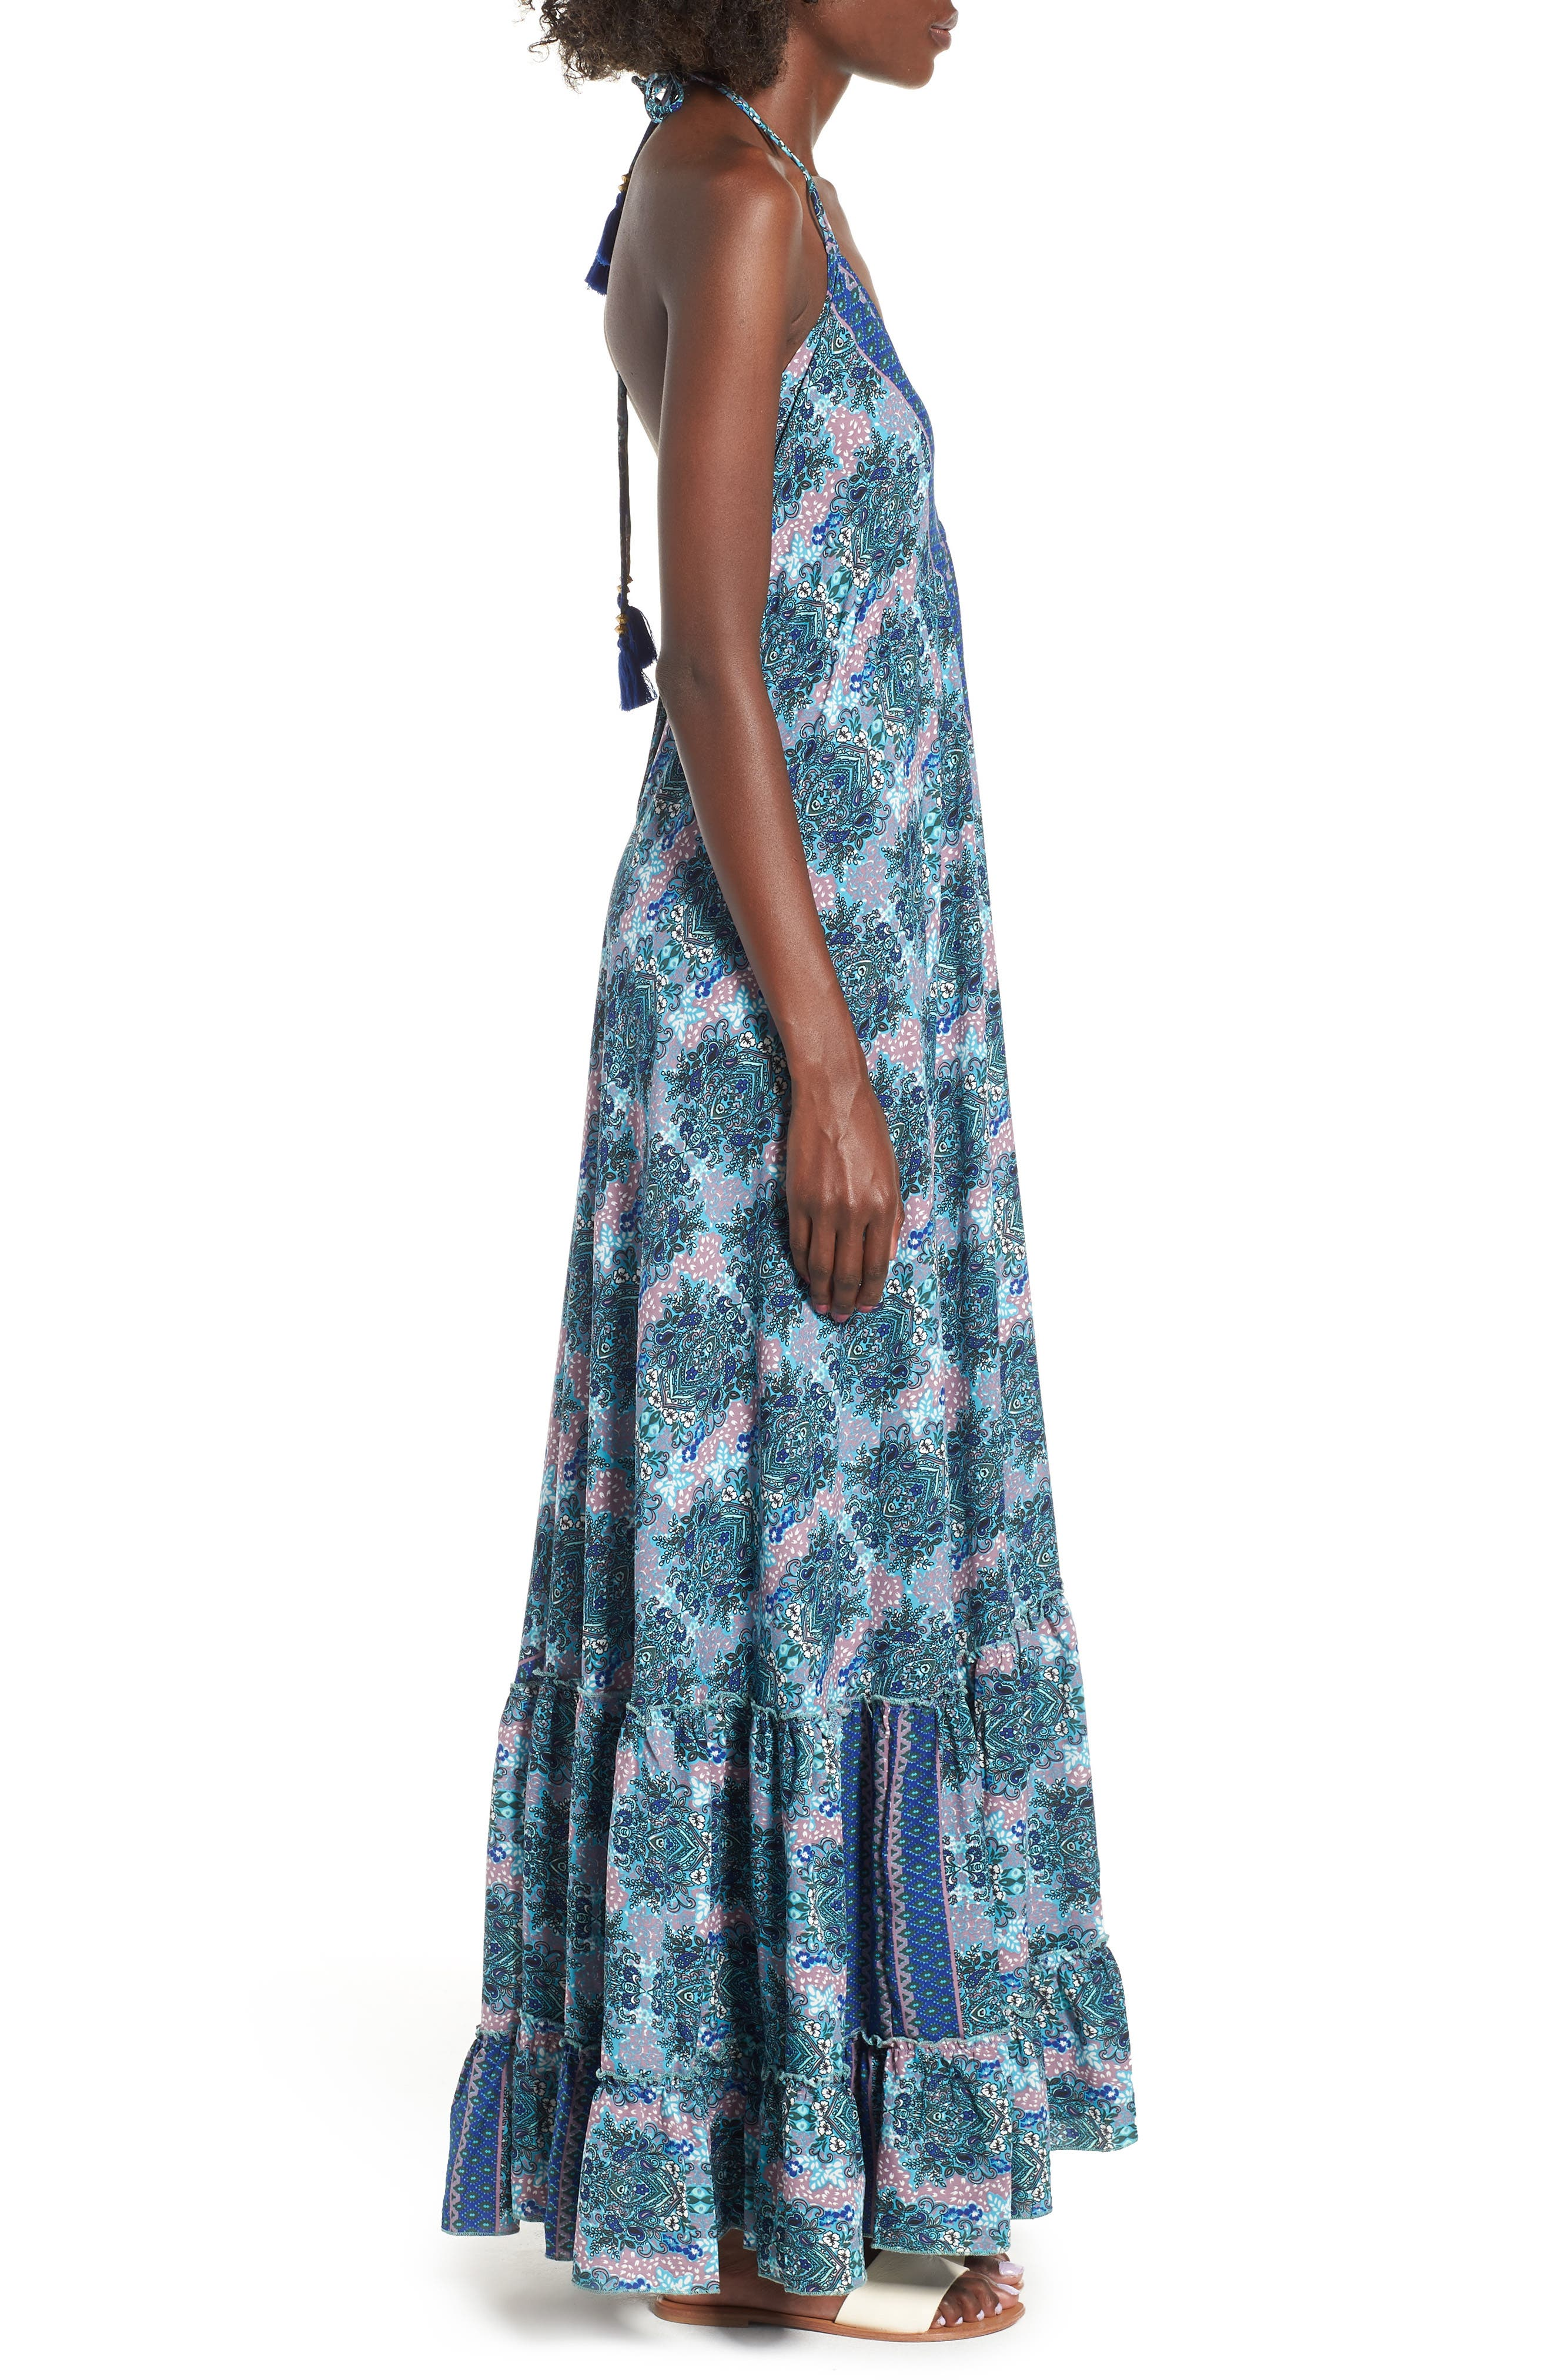 Poetic Dreams Halter Maxi Dress,                             Alternate thumbnail 4, color,                             Blue